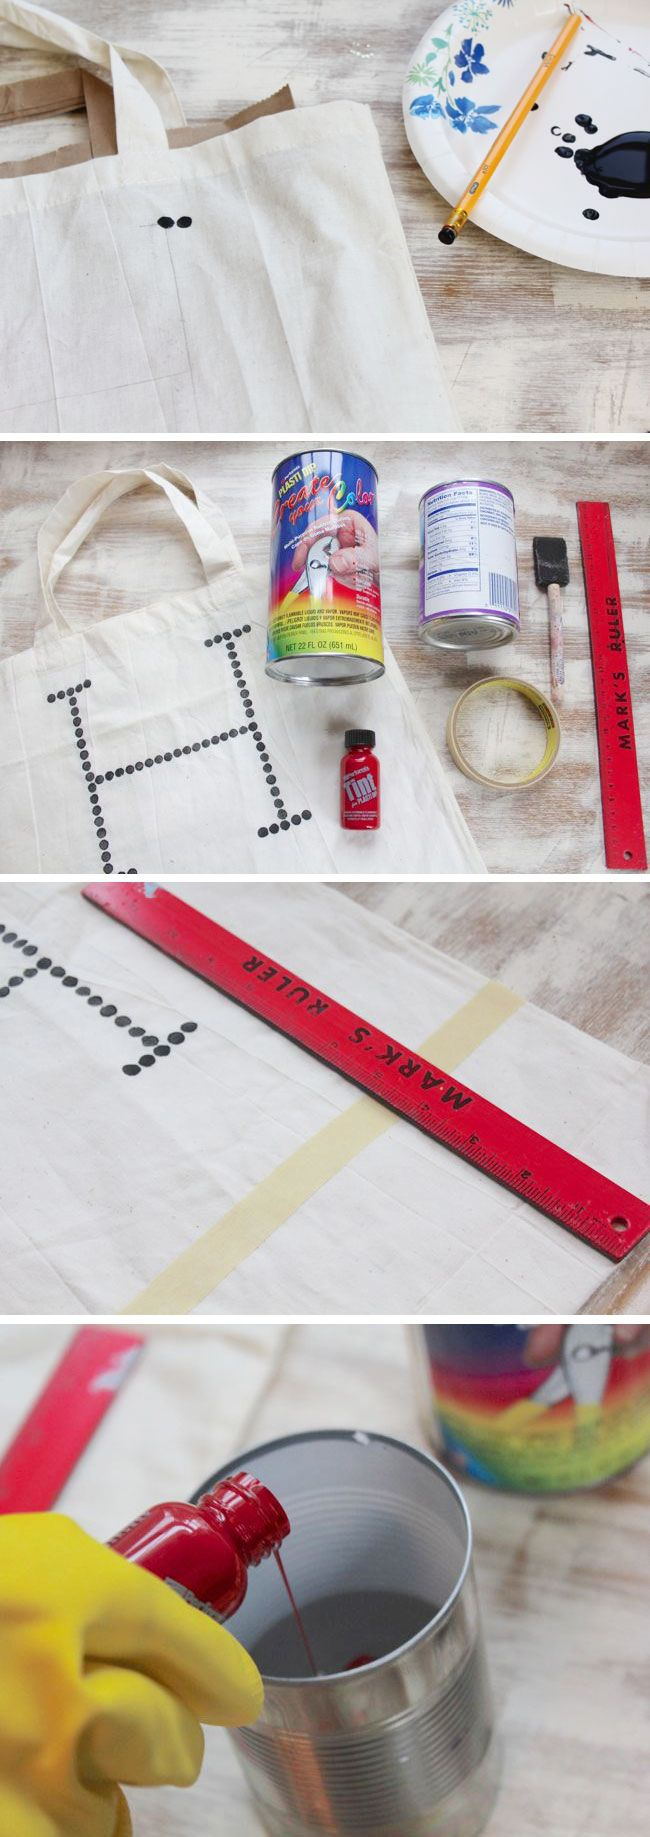 how to make tote bag with plasti dip